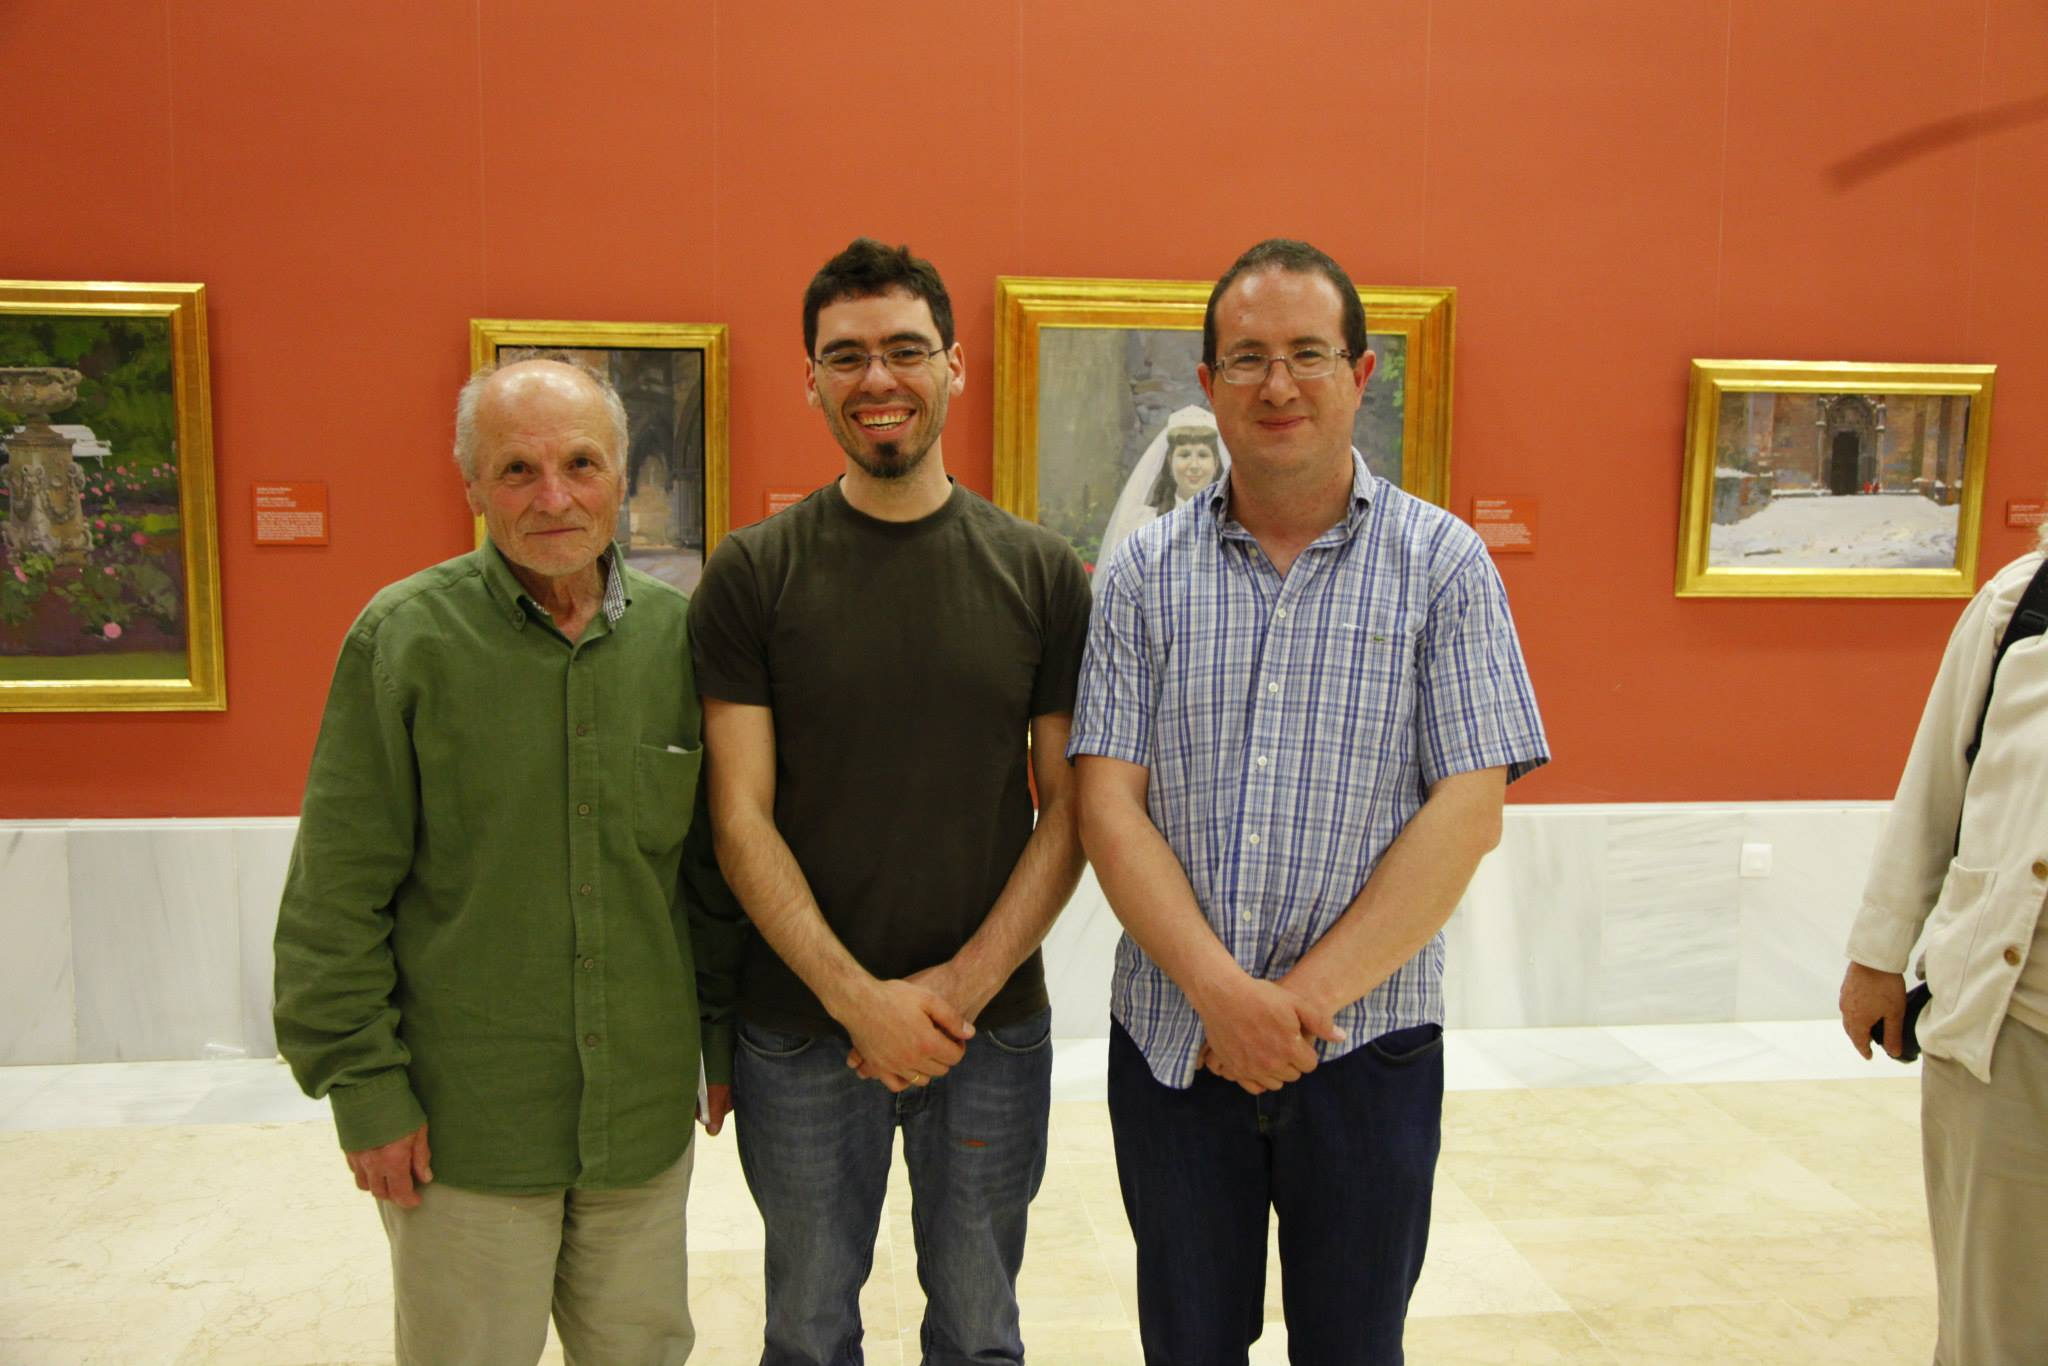 Here I am among Antonio López García and Andrés García Ibañez